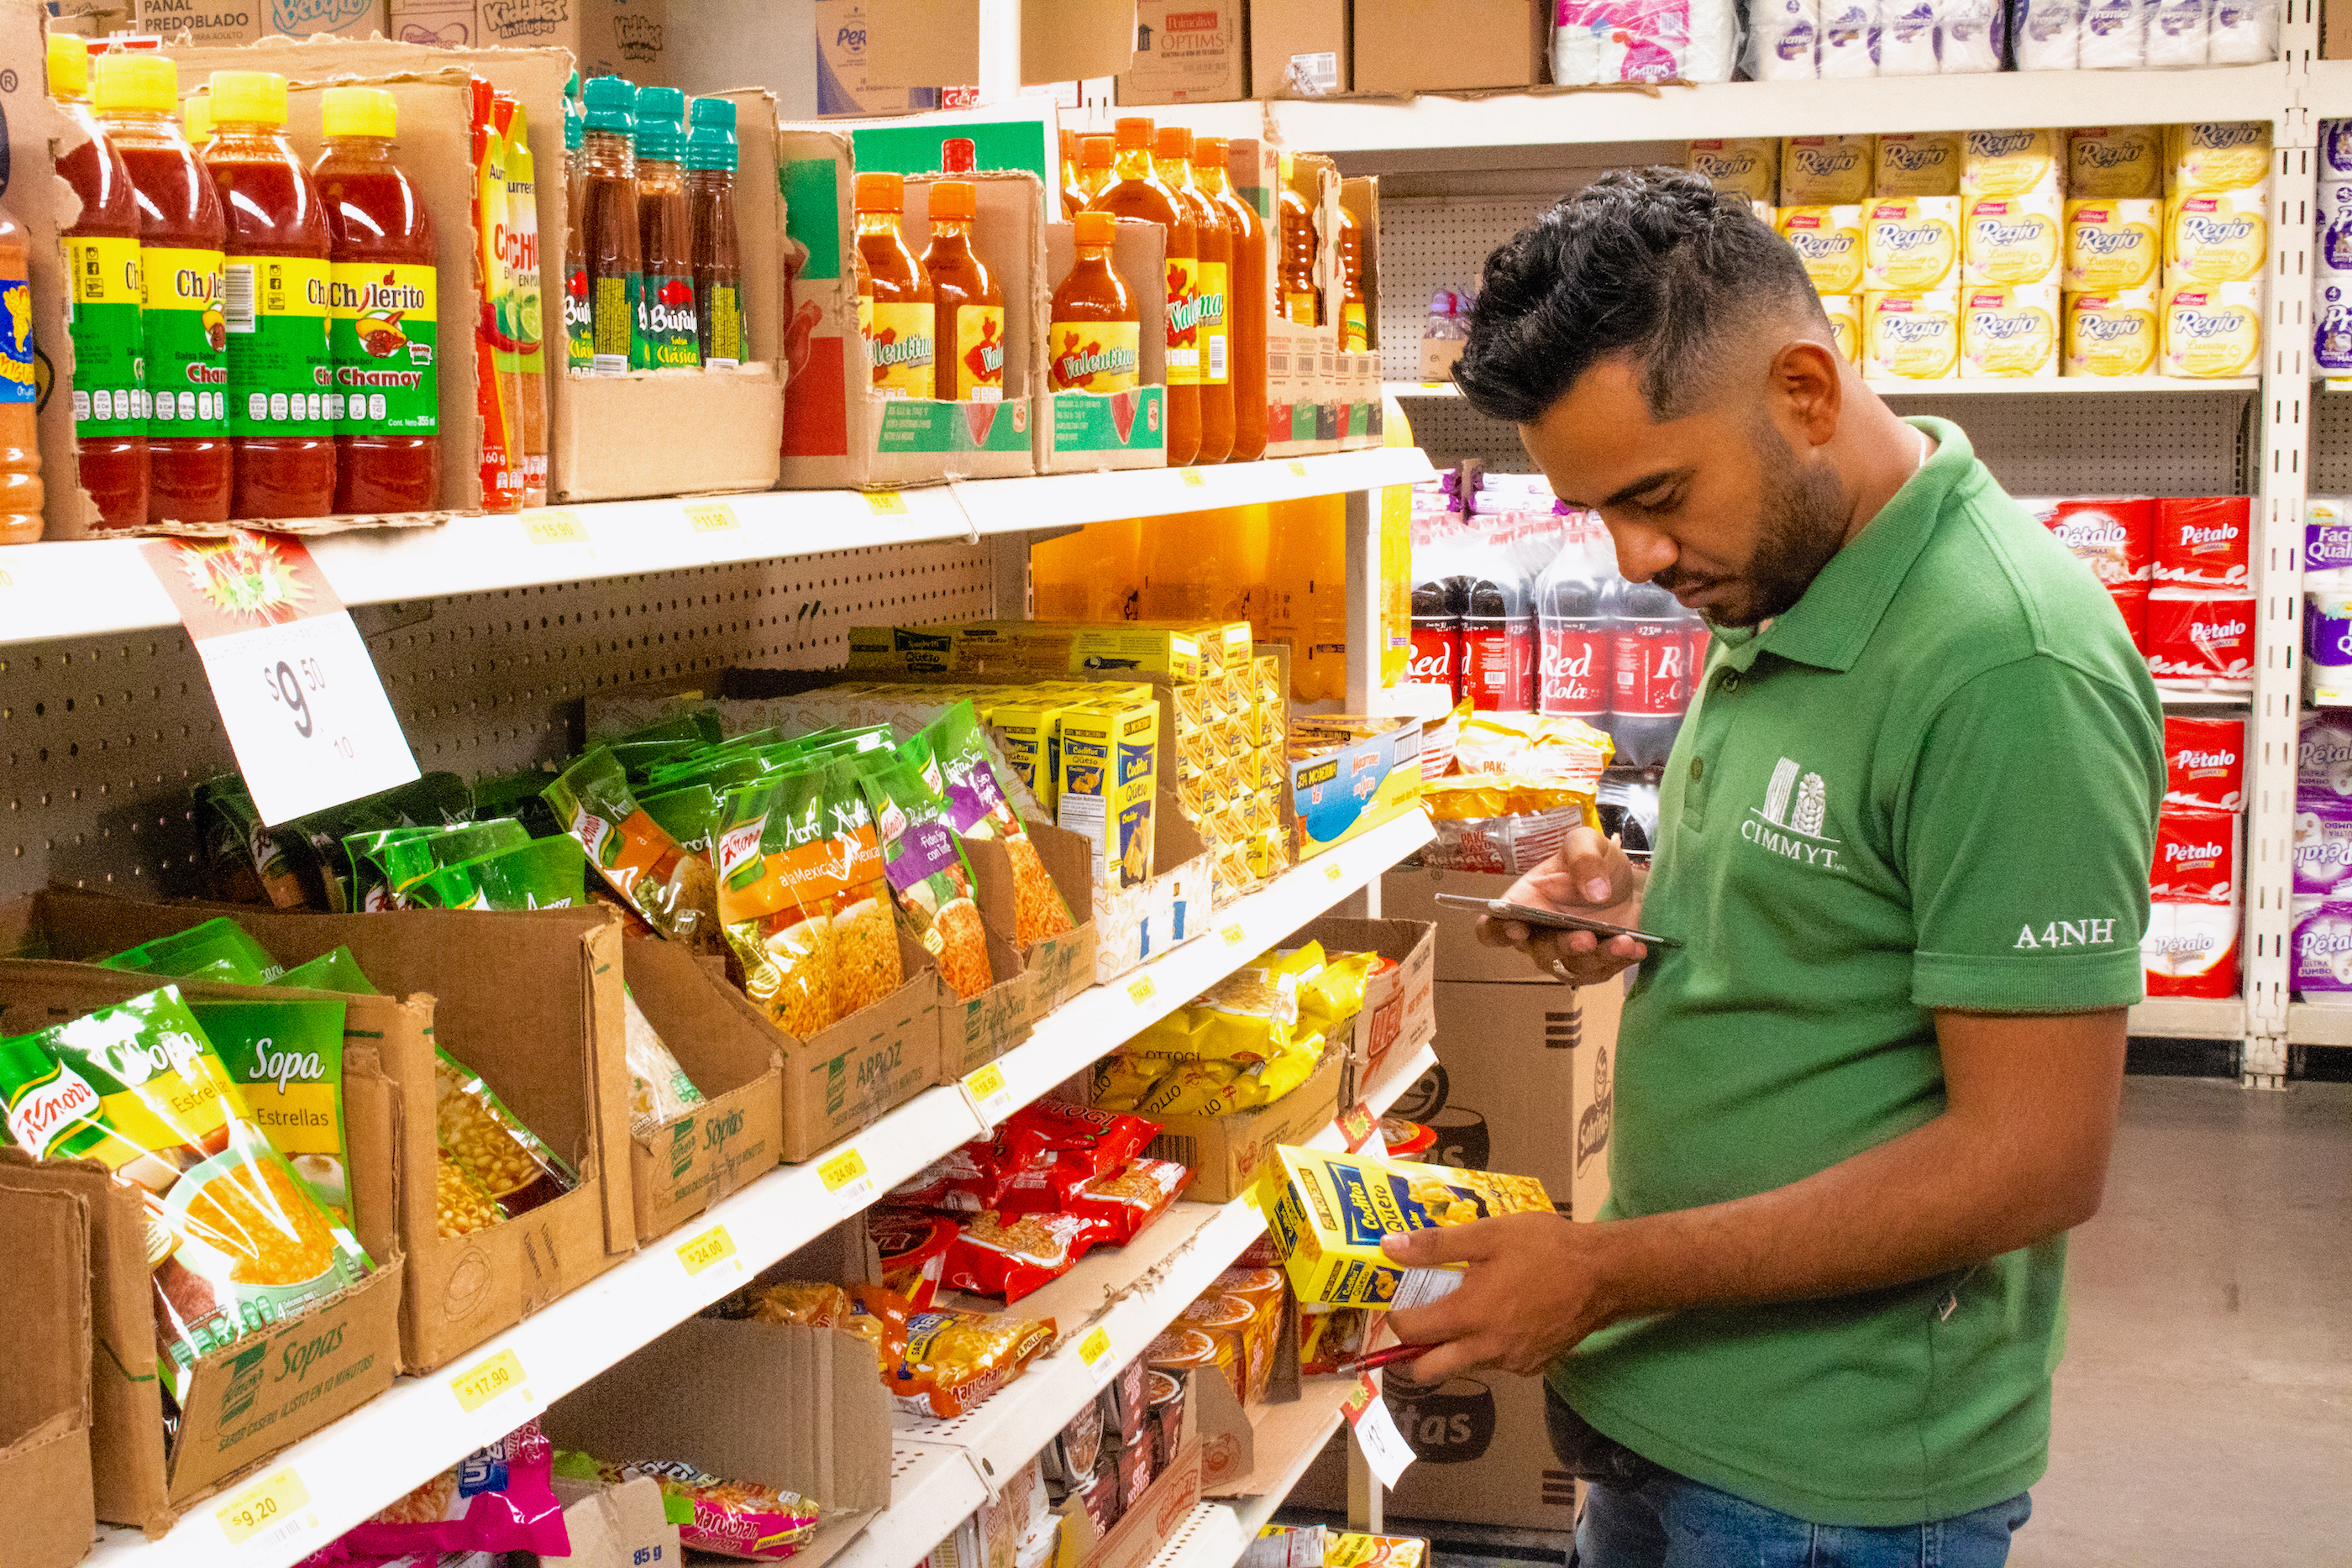 In a small supermarket in San Vicente, the research team found nearly 50 different types of biscuits and around 80 savory maize-based snacks like chips and tortillas. (Photo: Emma Orchardson/CIMMYT)